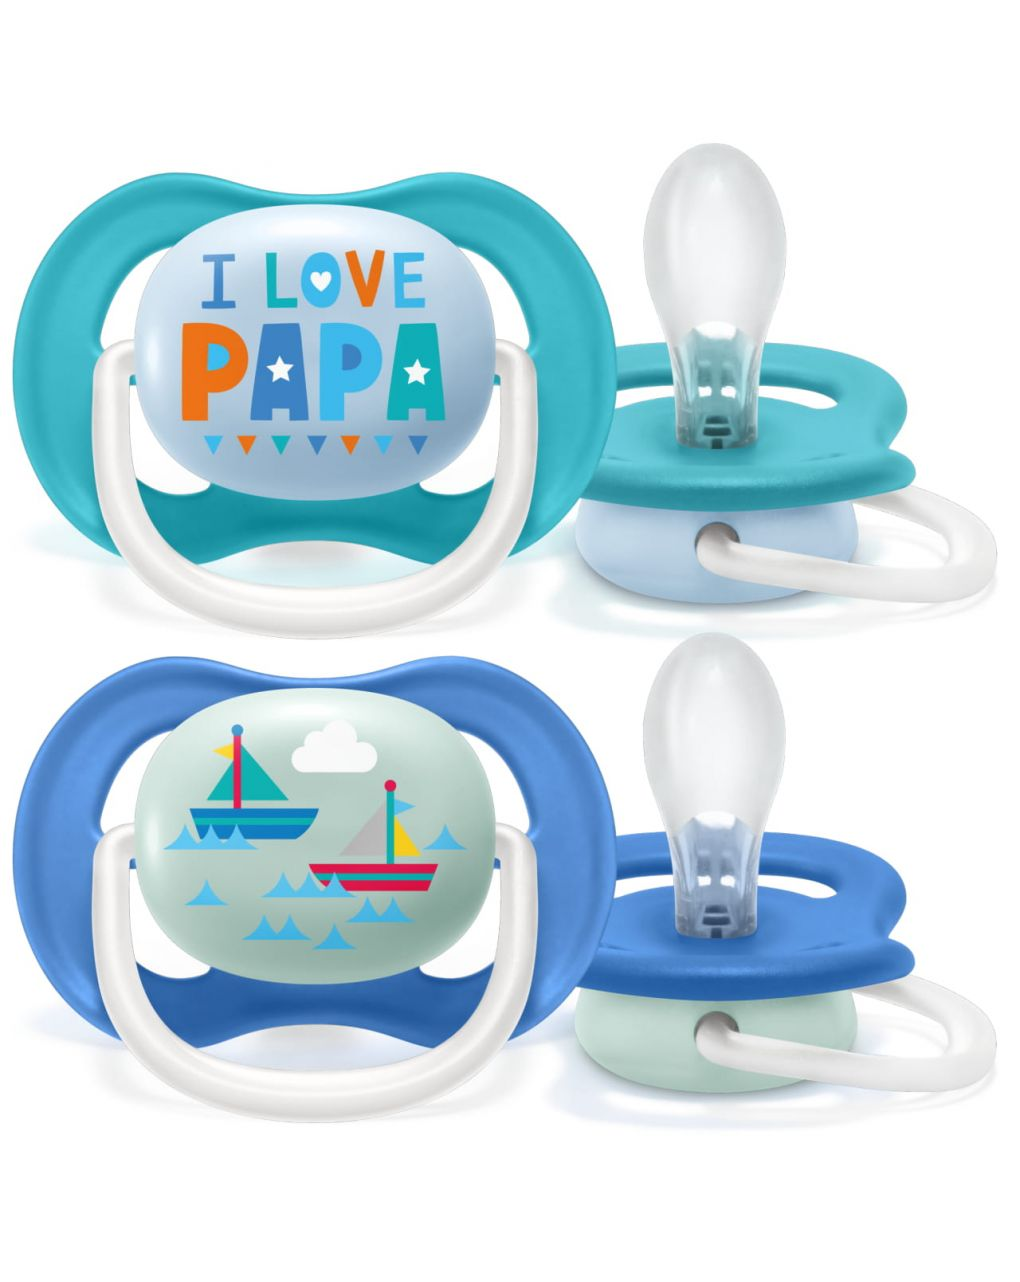 Philips avent 2 succhietti ultra air collection 6-18m maschio - papa - Avent